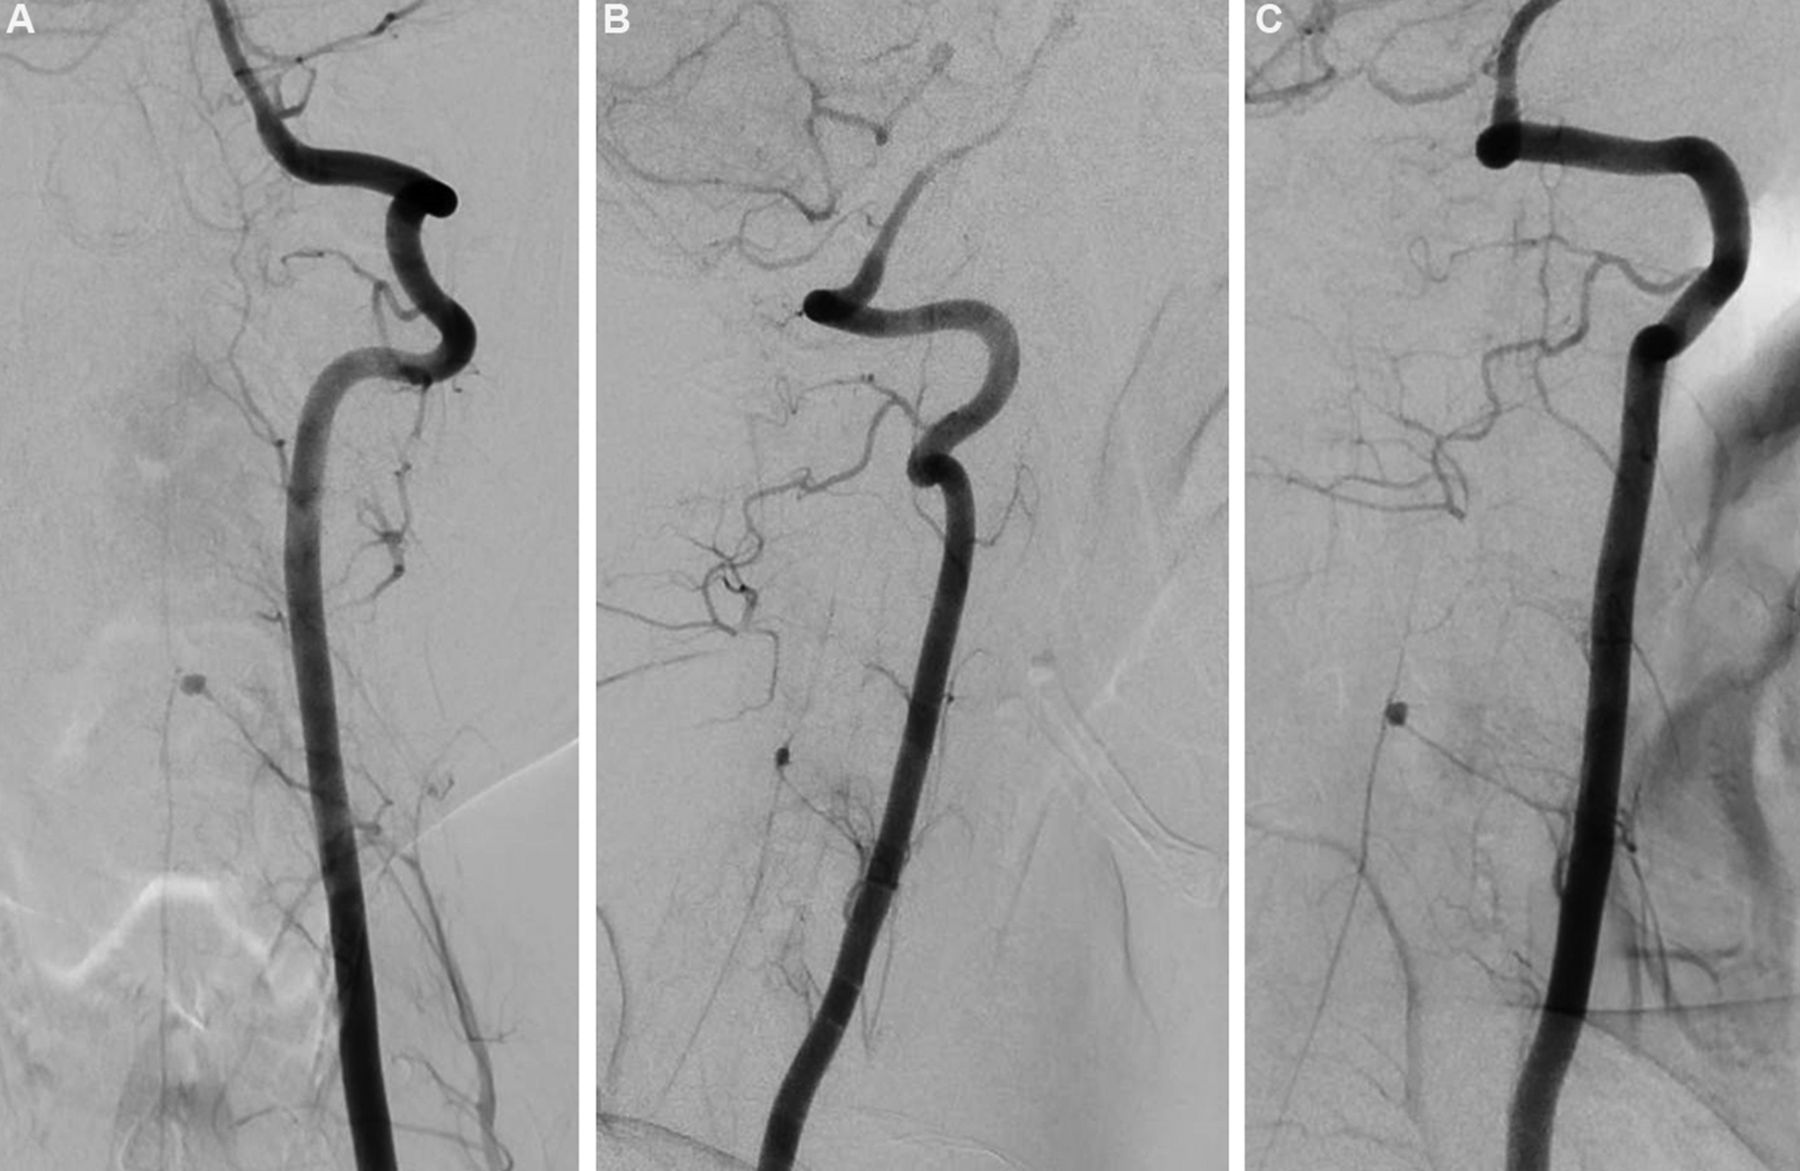 Conservative management of a post-traumatic pseudoaneurysm of the